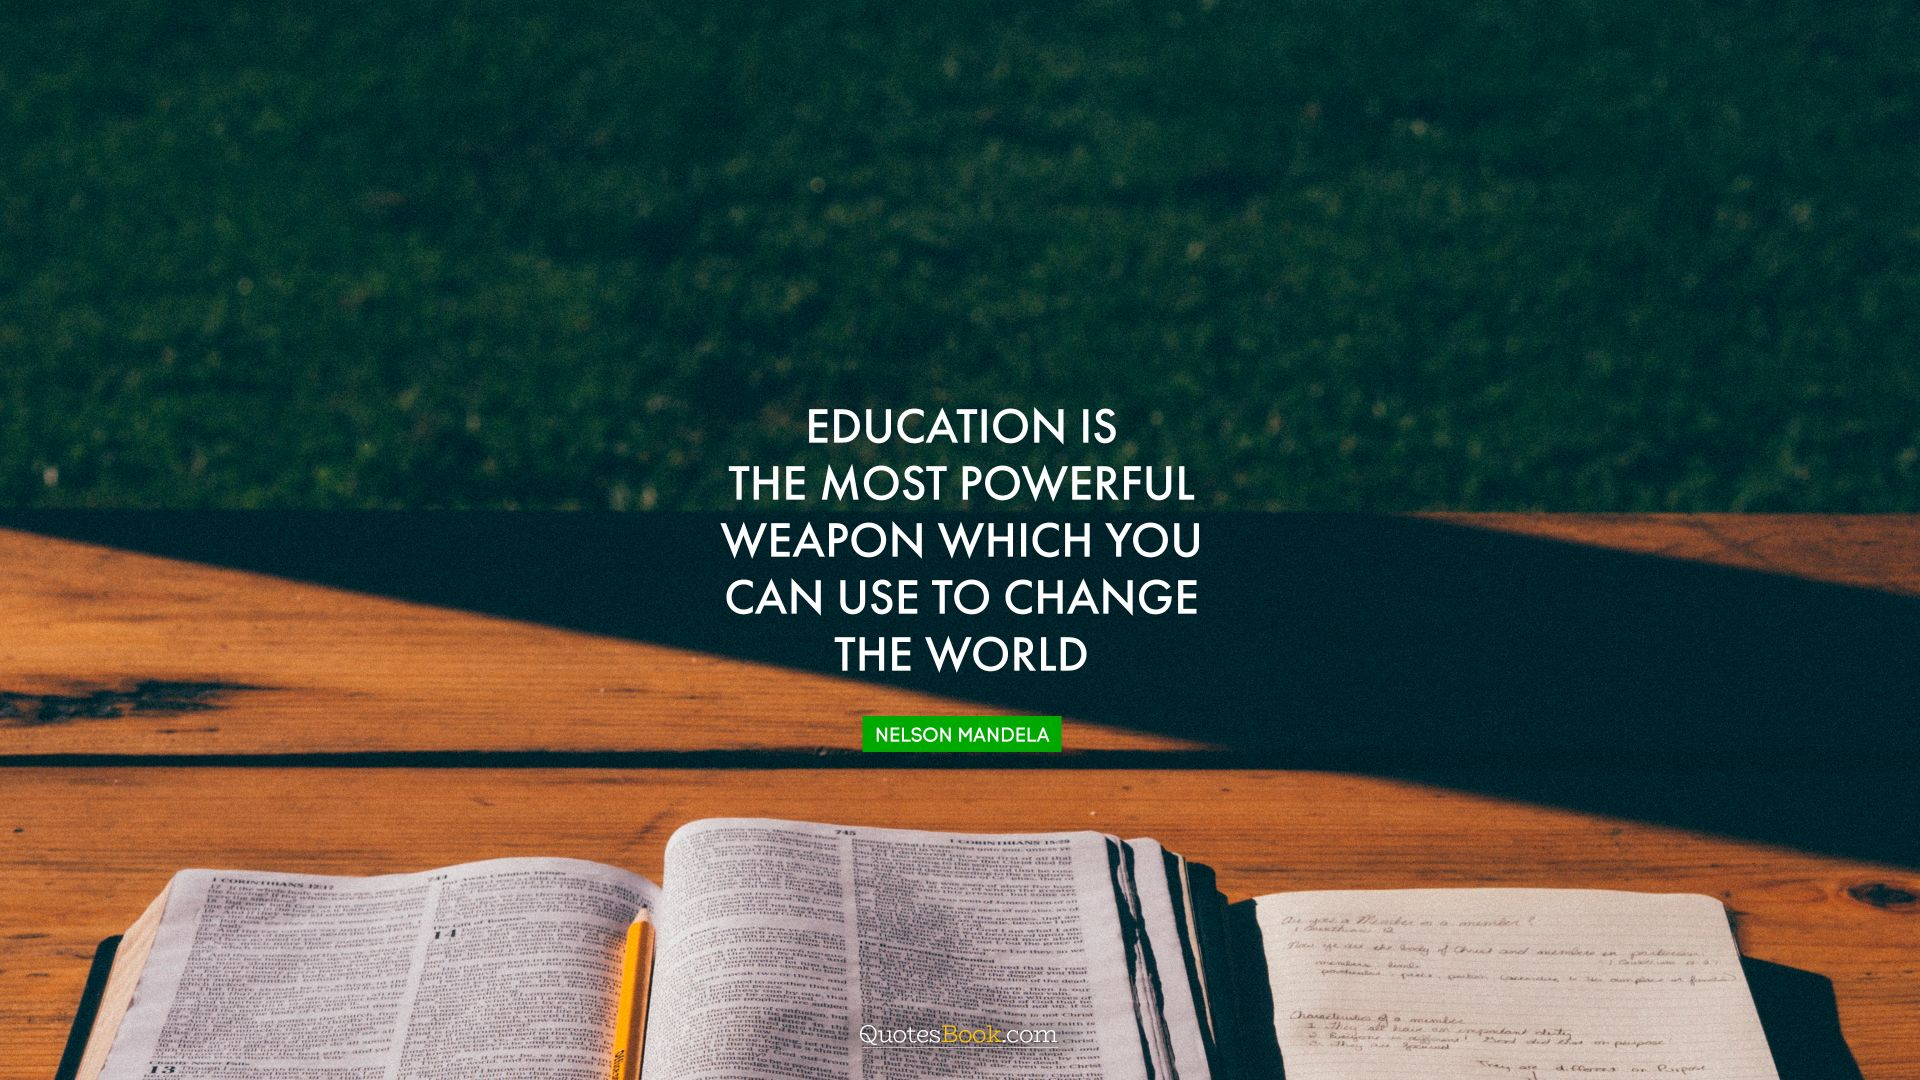 Education is the most powerful weapon which you can use to change the world. - Quote by Nelson Mandela